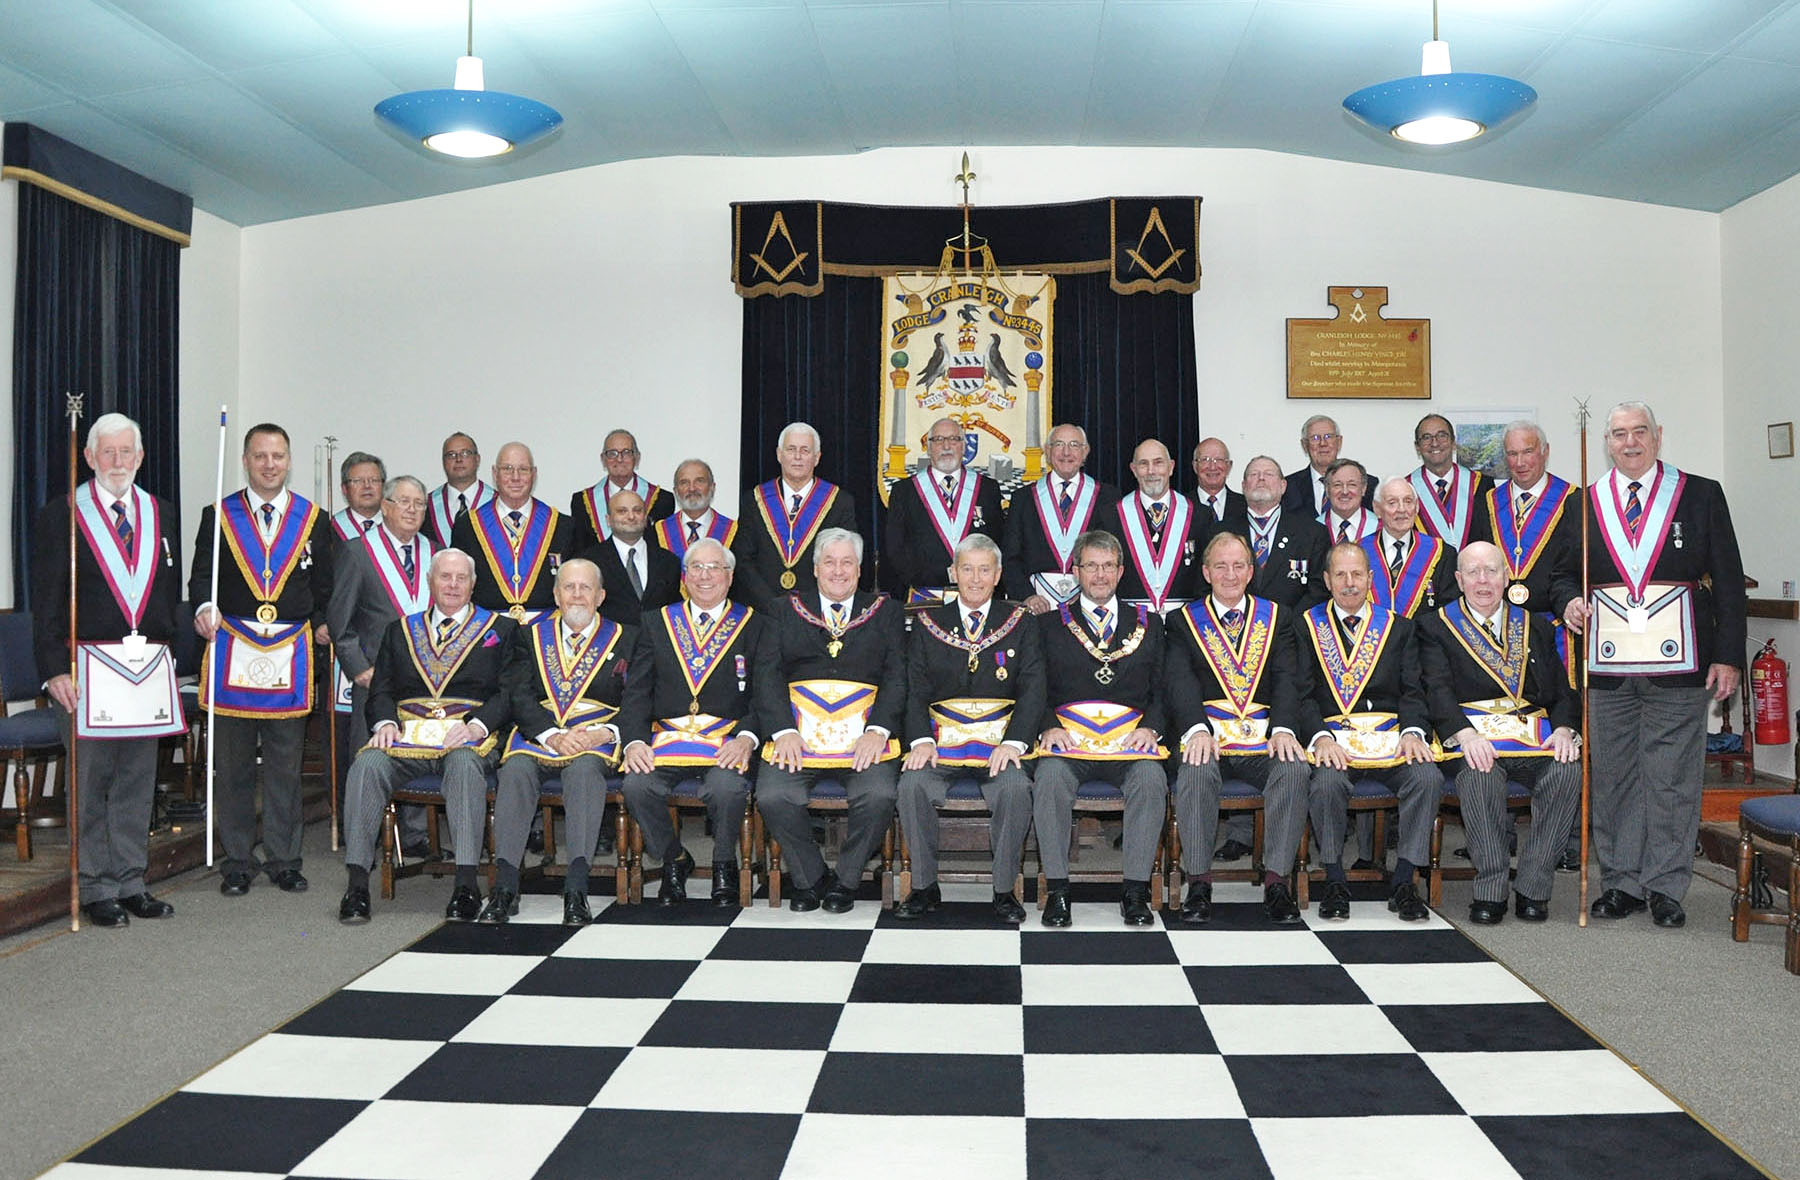 Executive visit to Cranleigh Centenary Lodge of Mark Master Masons